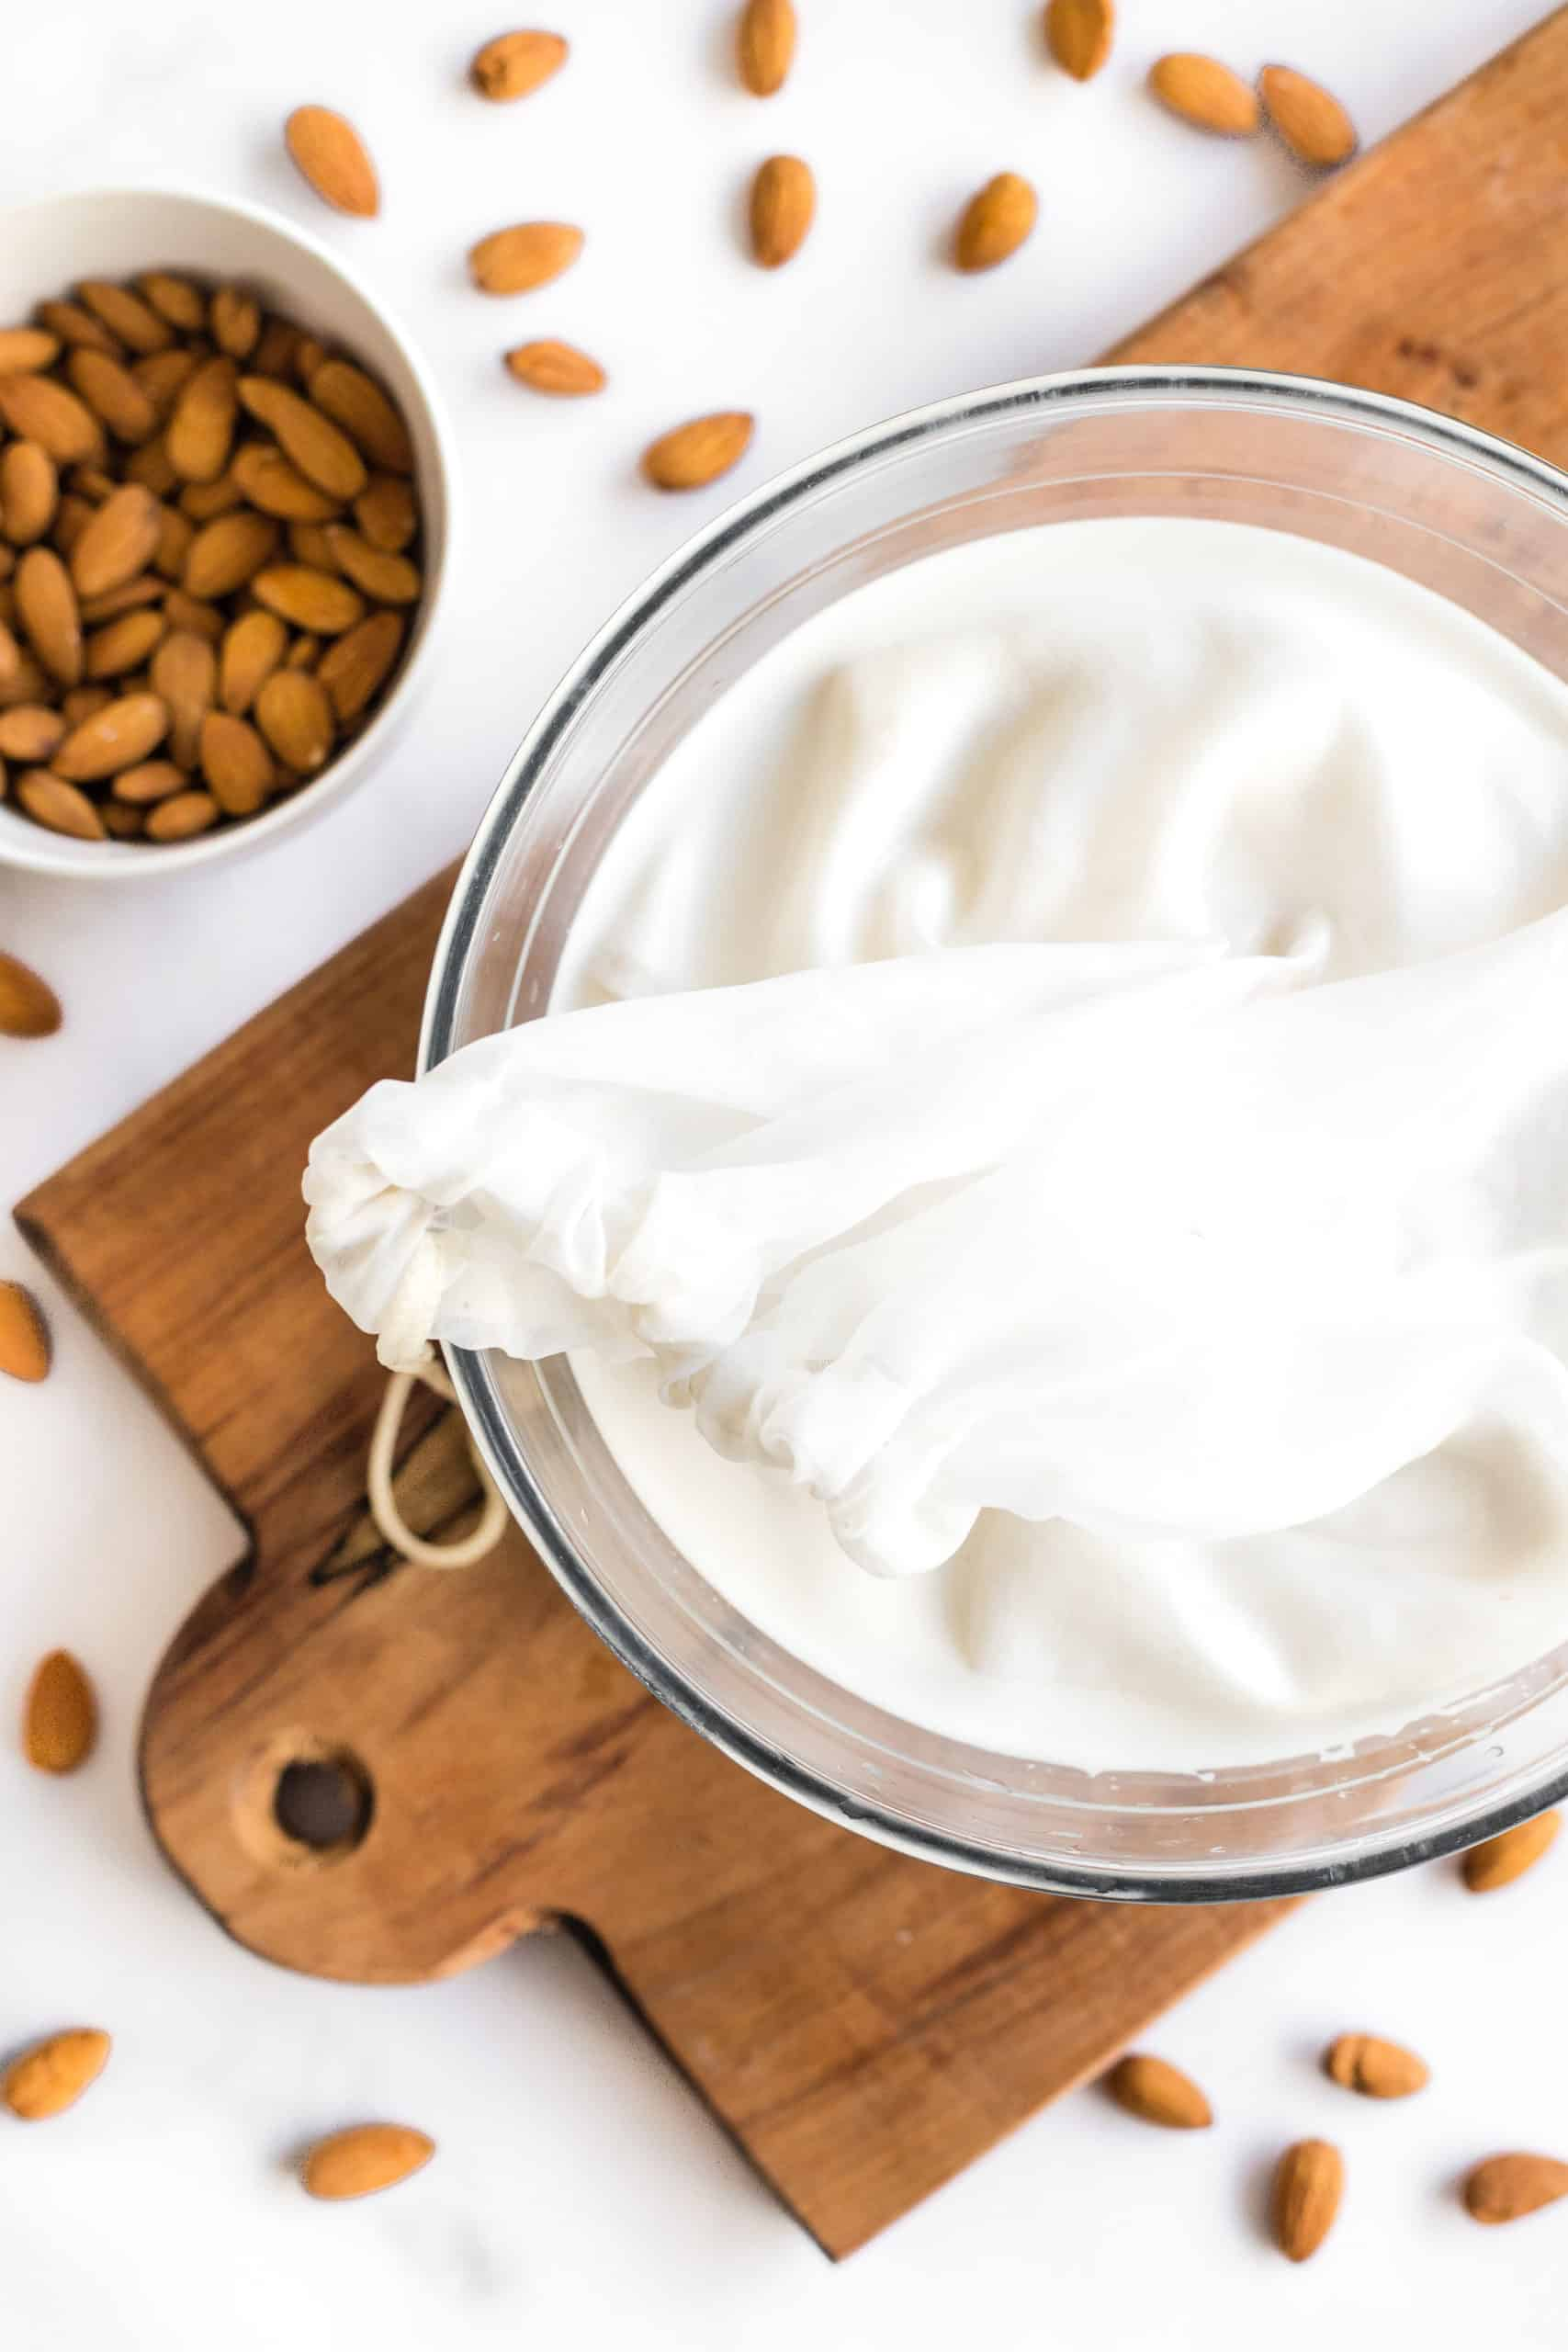 A bowl of almond milk ready to be strained with a nut milk bag.